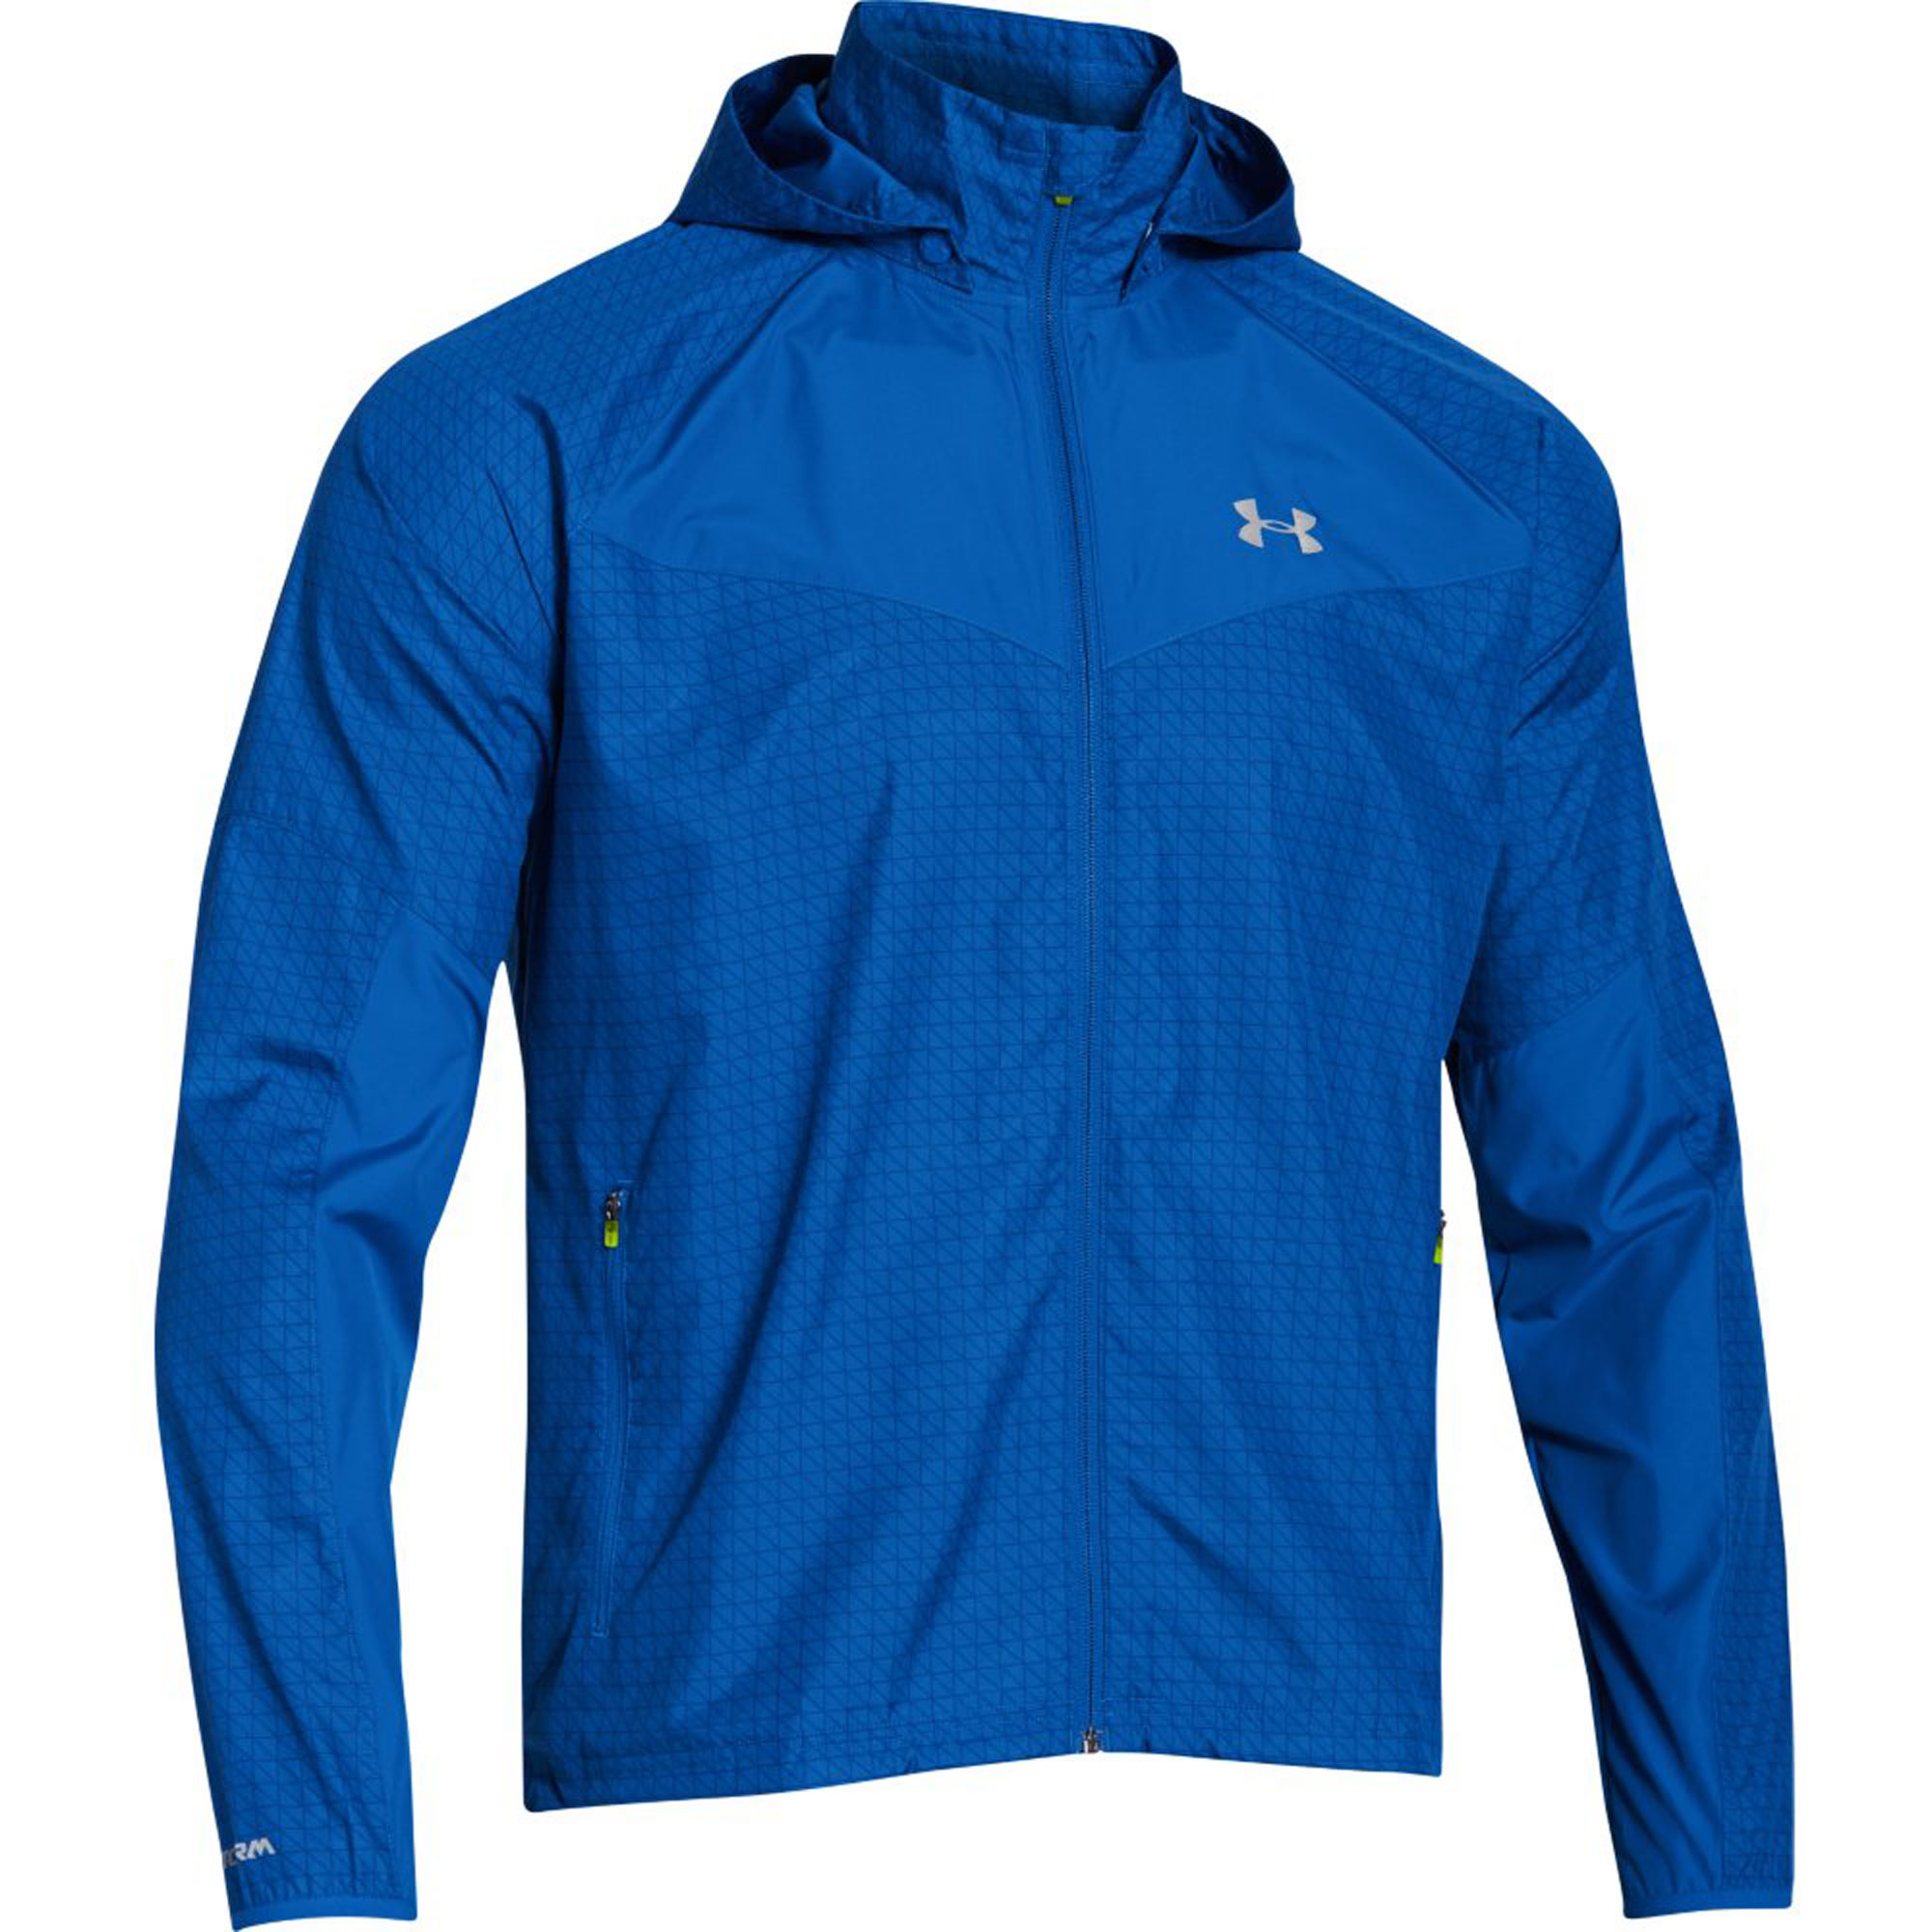 wiggle under armour storm anchor jacket aw14 running windproof jackets. Black Bedroom Furniture Sets. Home Design Ideas